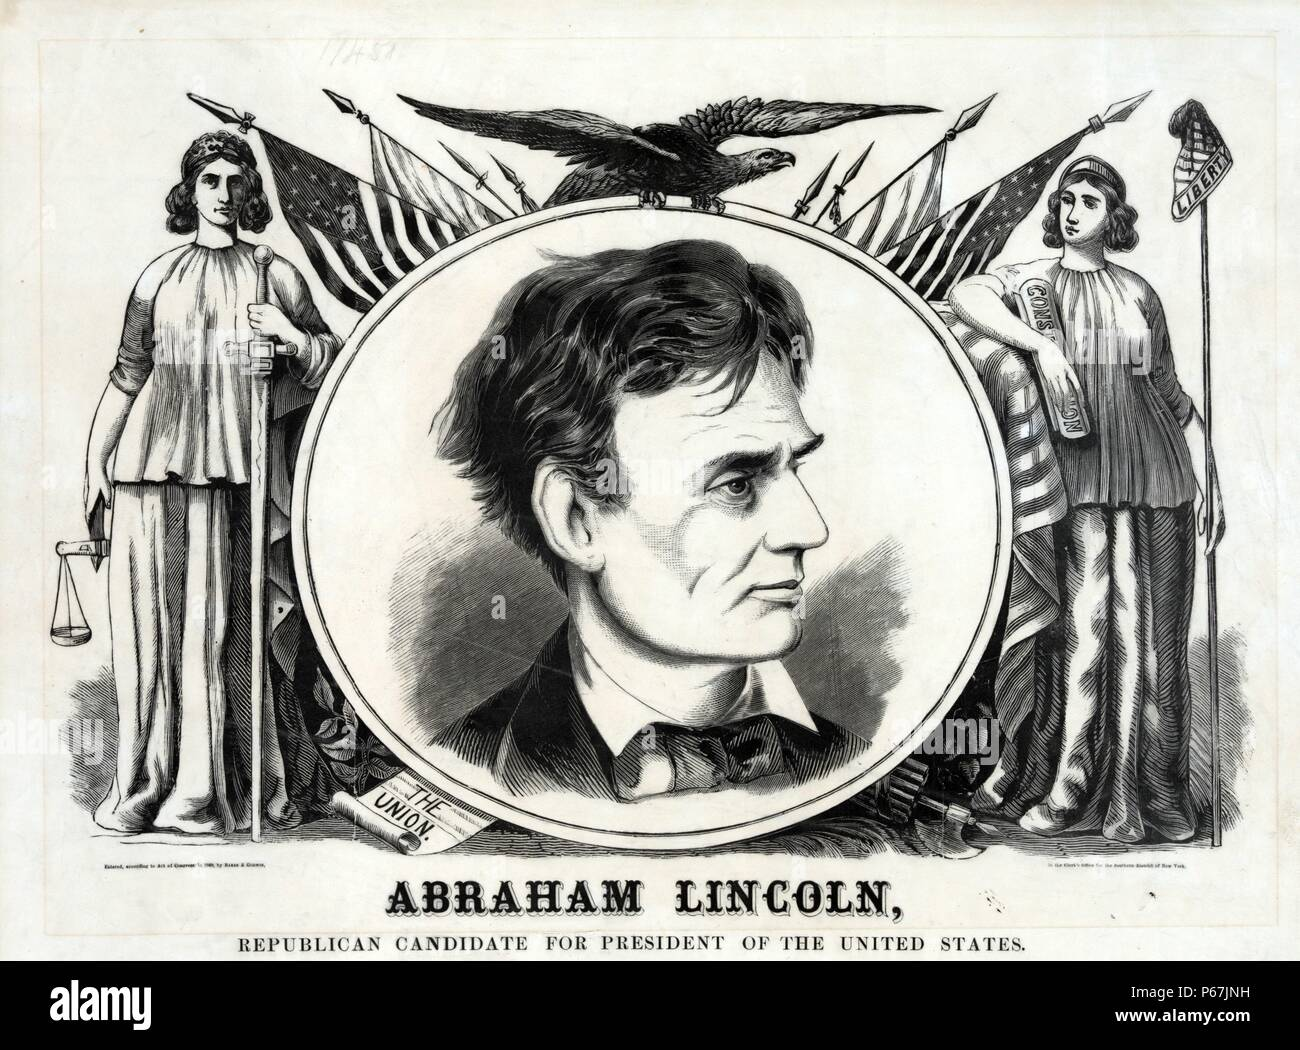 Abraham Lincoln, Republican candidate for president of the United States' Large campaign banner or poster for Republican presidential candidate Abraham Lincoln. It features a central roundel with a bust portrait of the candidate, flanked by standing deities Justice and Liberty. An eagle with wings spread perches atop the roundel, behind which are several American flags on pointed staffs. - Stock Image